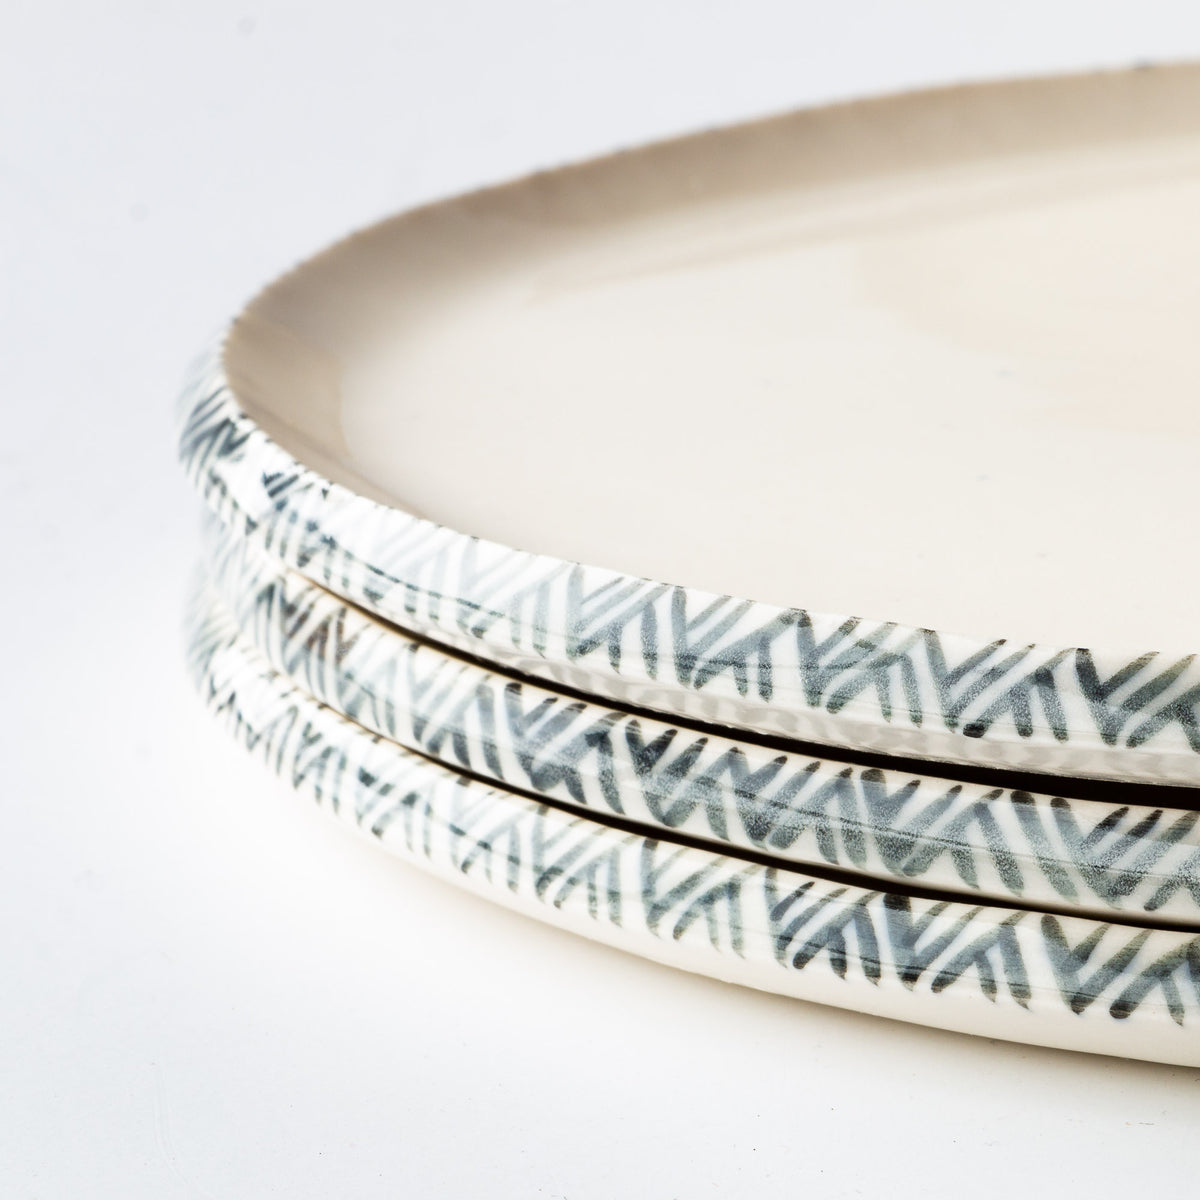 Rim Detail - Handmade Porcelain Plate With Rim Adorned With a Painted Frieze - Sold by Chic & Basta